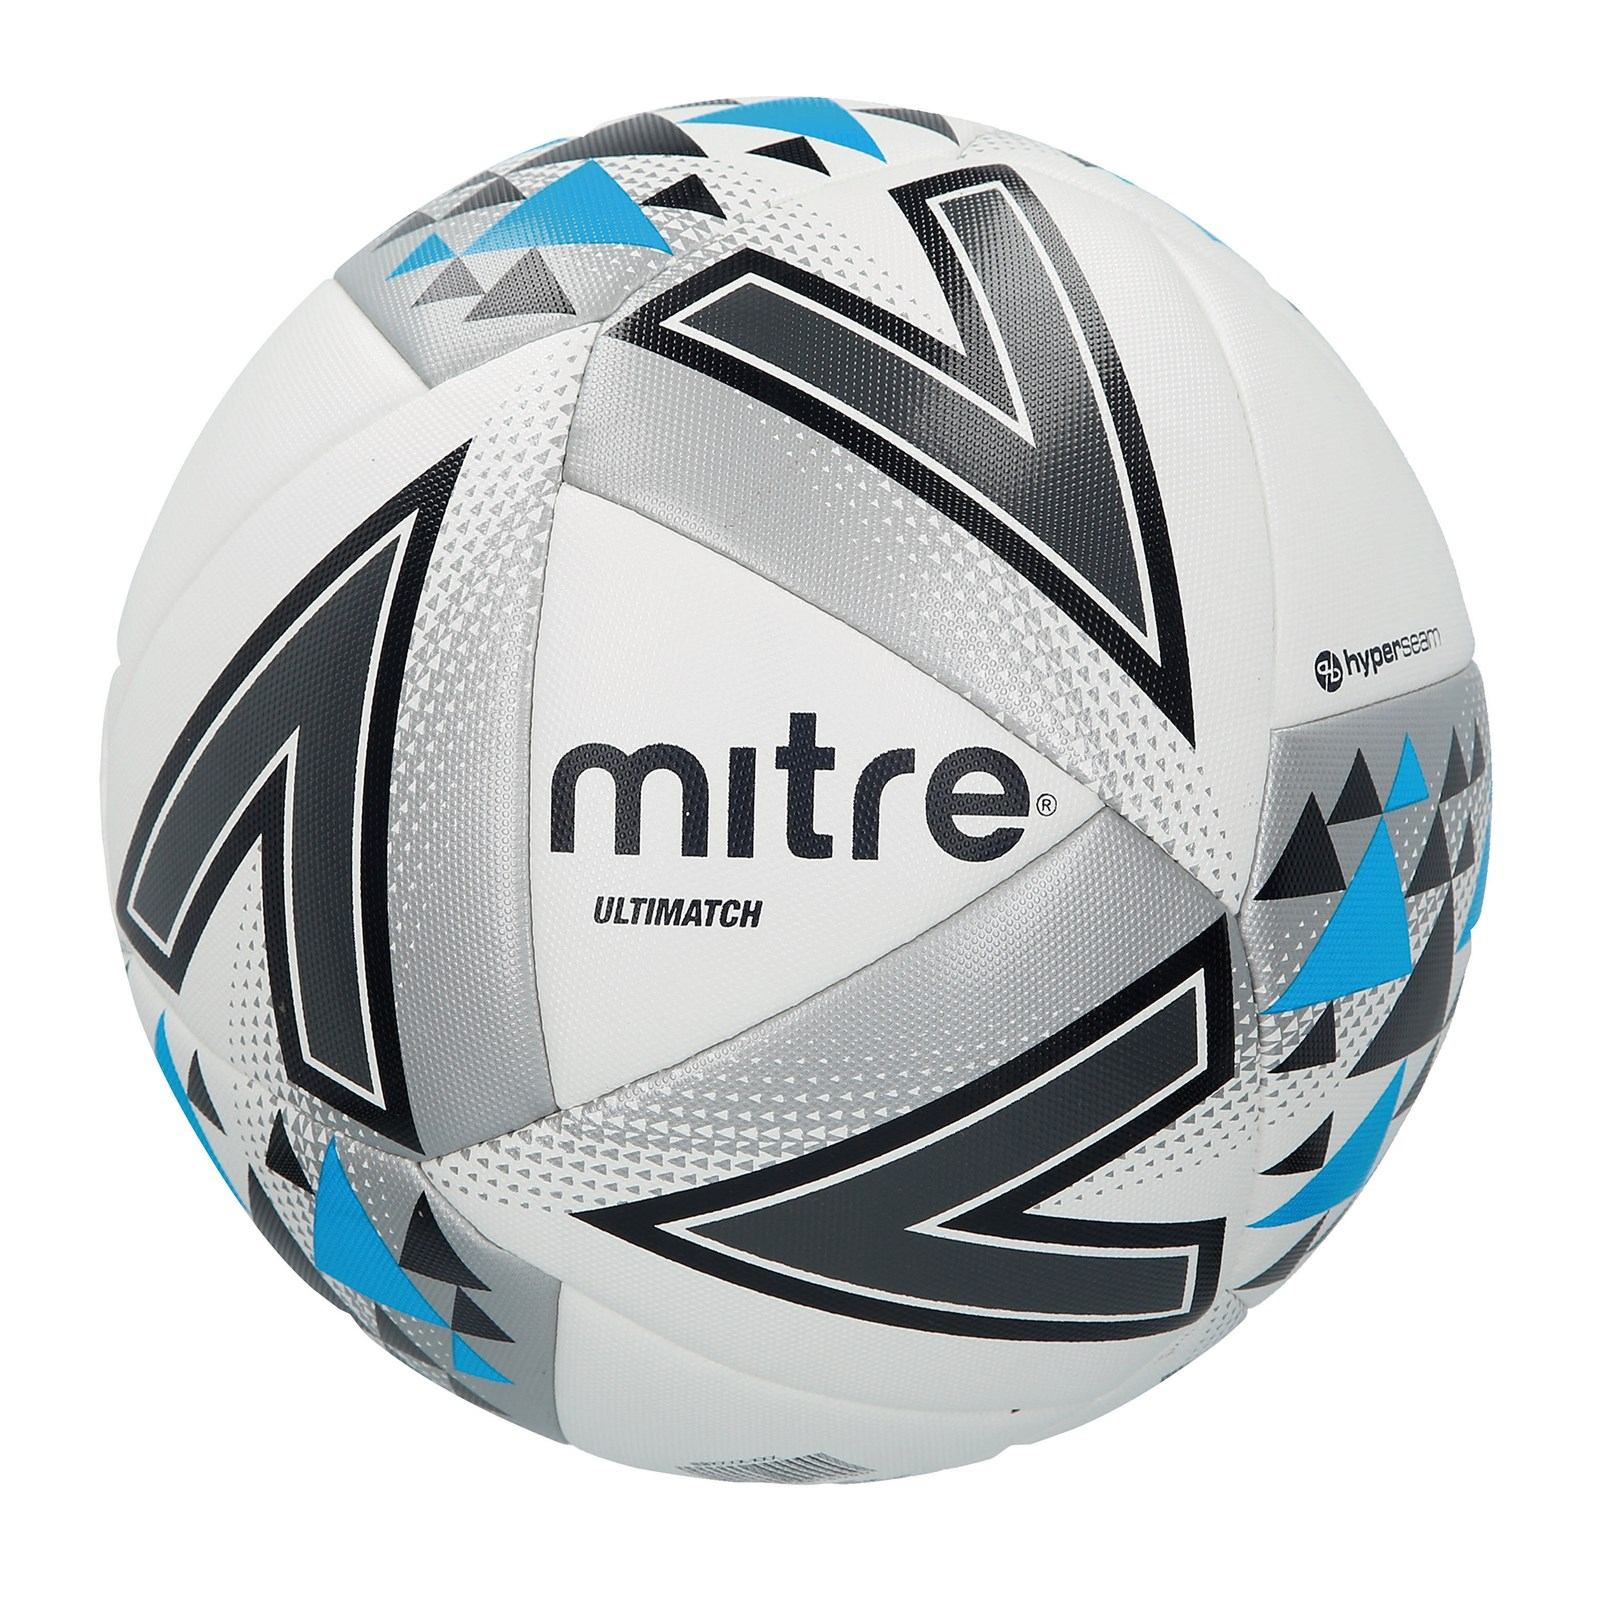 Mitre Ultimatch Football - Size 3 - White/Silver/Blue